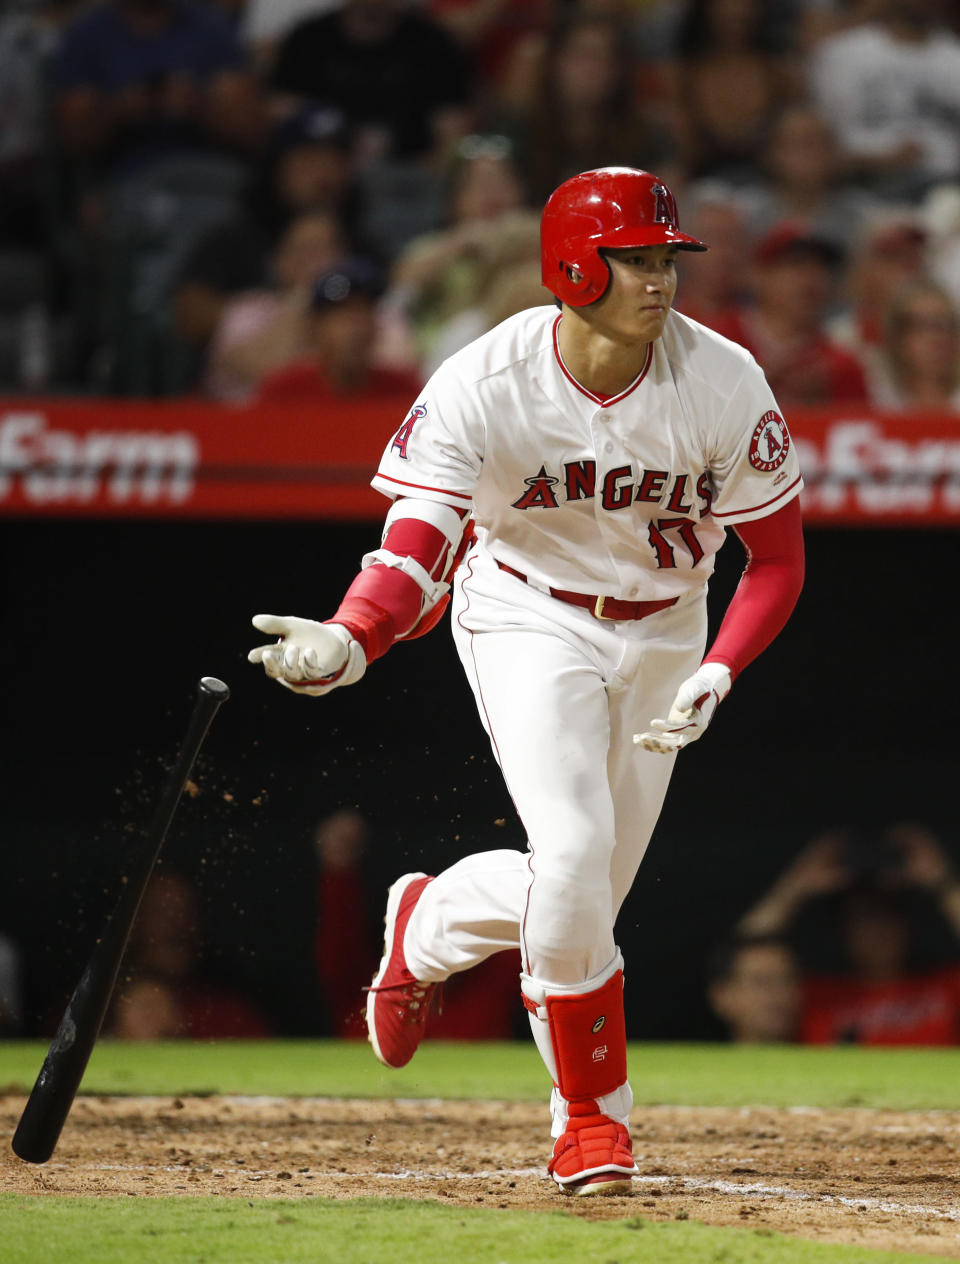 Los Angeles Angels' Shohei Ohtani, of Japan, tosses his bat after hitting a single during the sixth inning of a baseball game against the Seattle Mariners, Saturday, Sept. 15, 2018, in Anaheim, Calif. (AP Photo/Jae C. Hong)